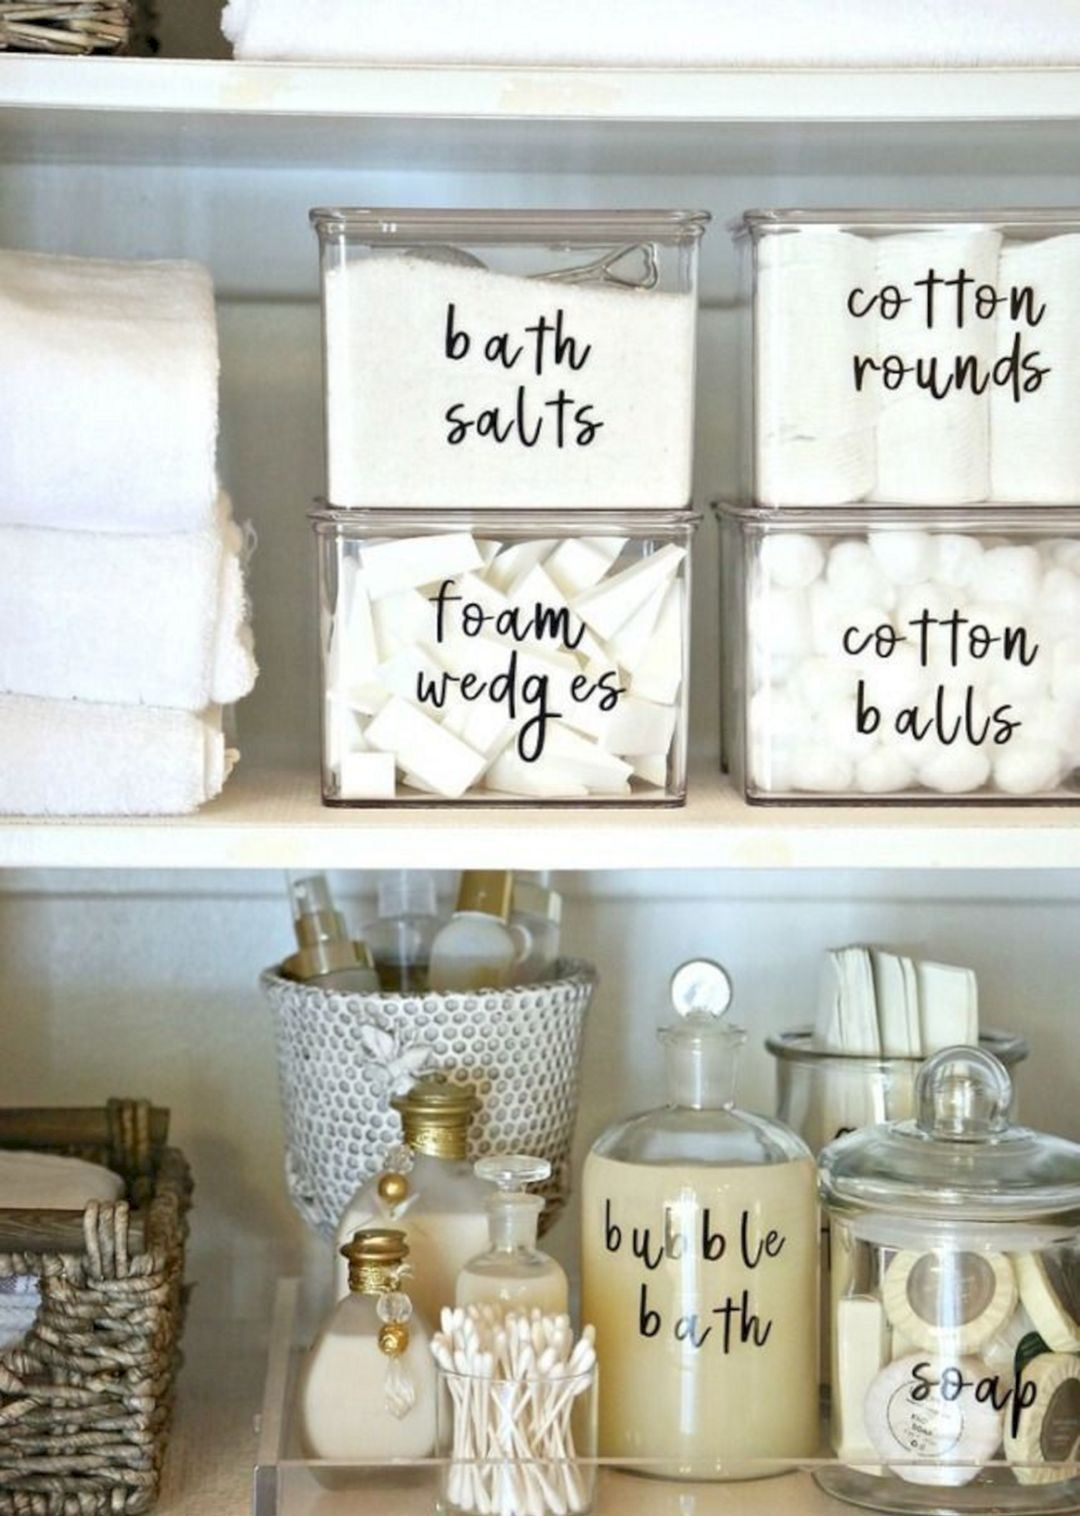 40 Home Organization Ideas That'll Make Your Life Easy